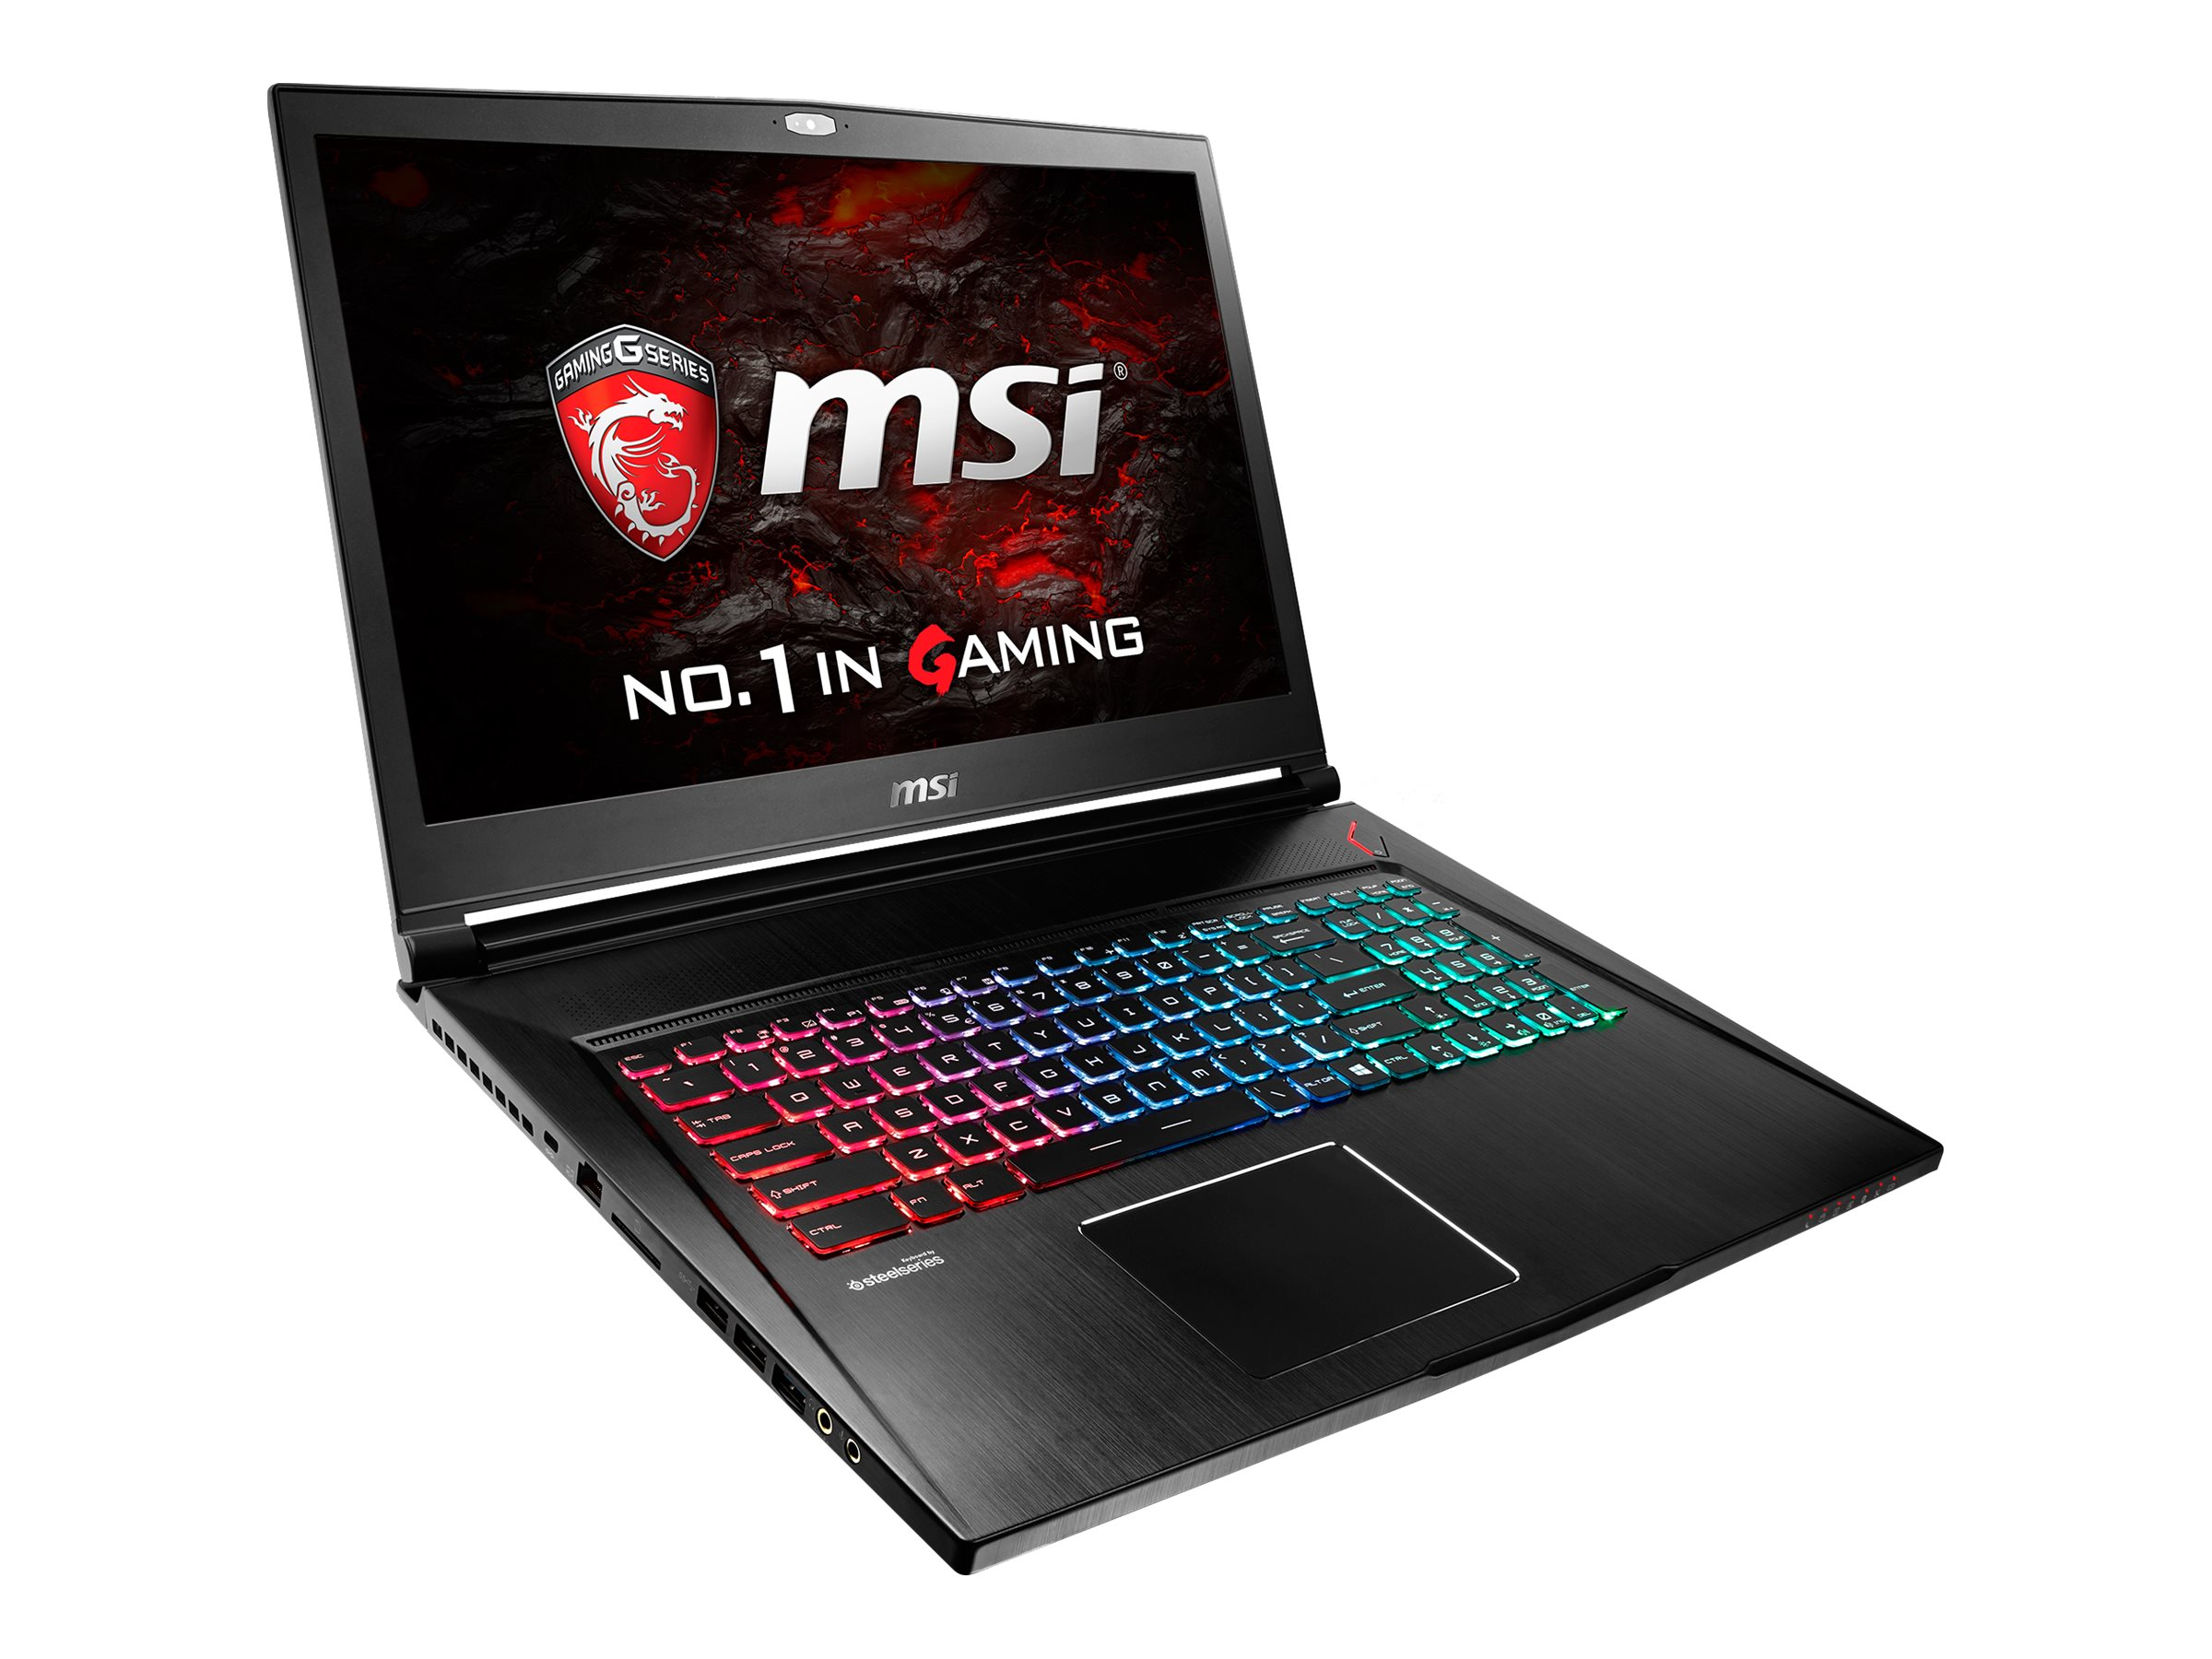 MSI Computer GS73VR STEALTH PRO 4K-016 Image 3